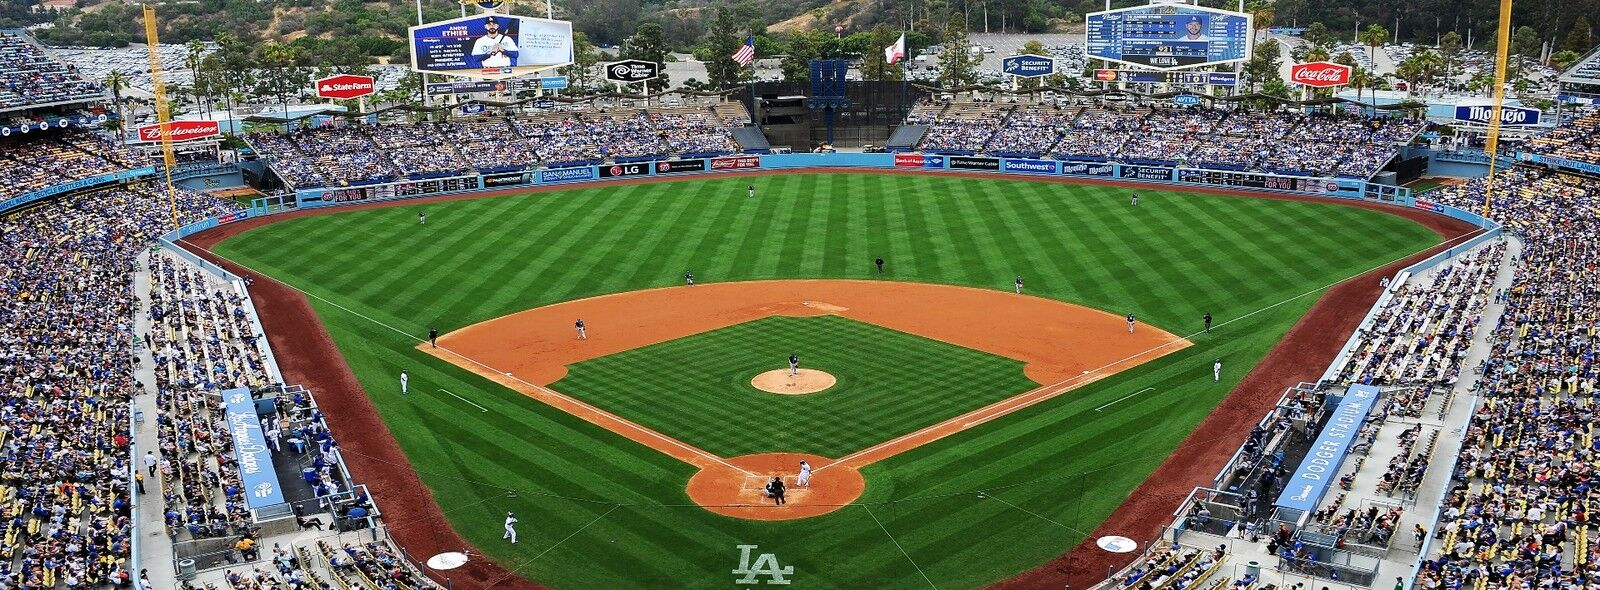 Milwaukee Brewers at Los Angeles Dodgers Tickets (Kids Hamper)